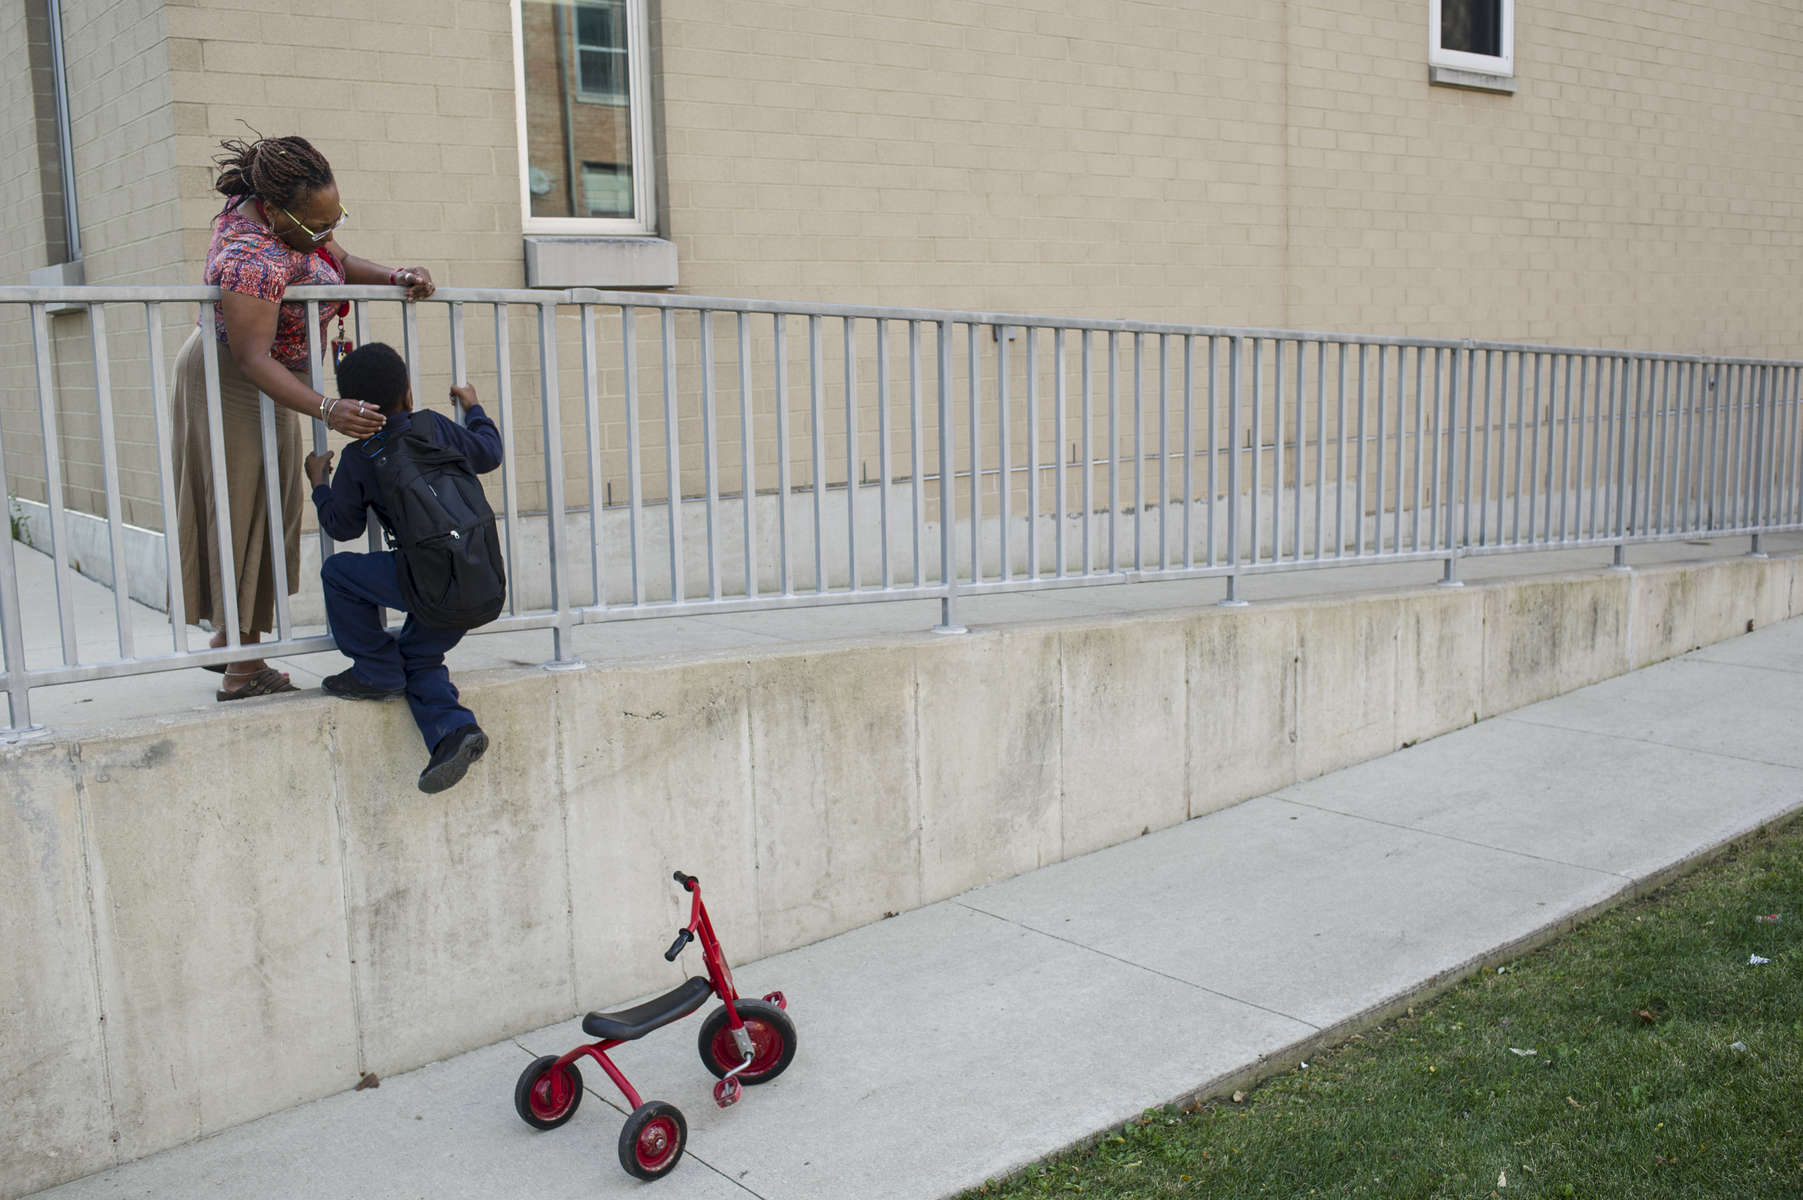 Special Needs classroom teacher Tammie Vinson helps a student as he climbs a wall during recess at Oscar DePriest Elementary School, October 18, 2016.